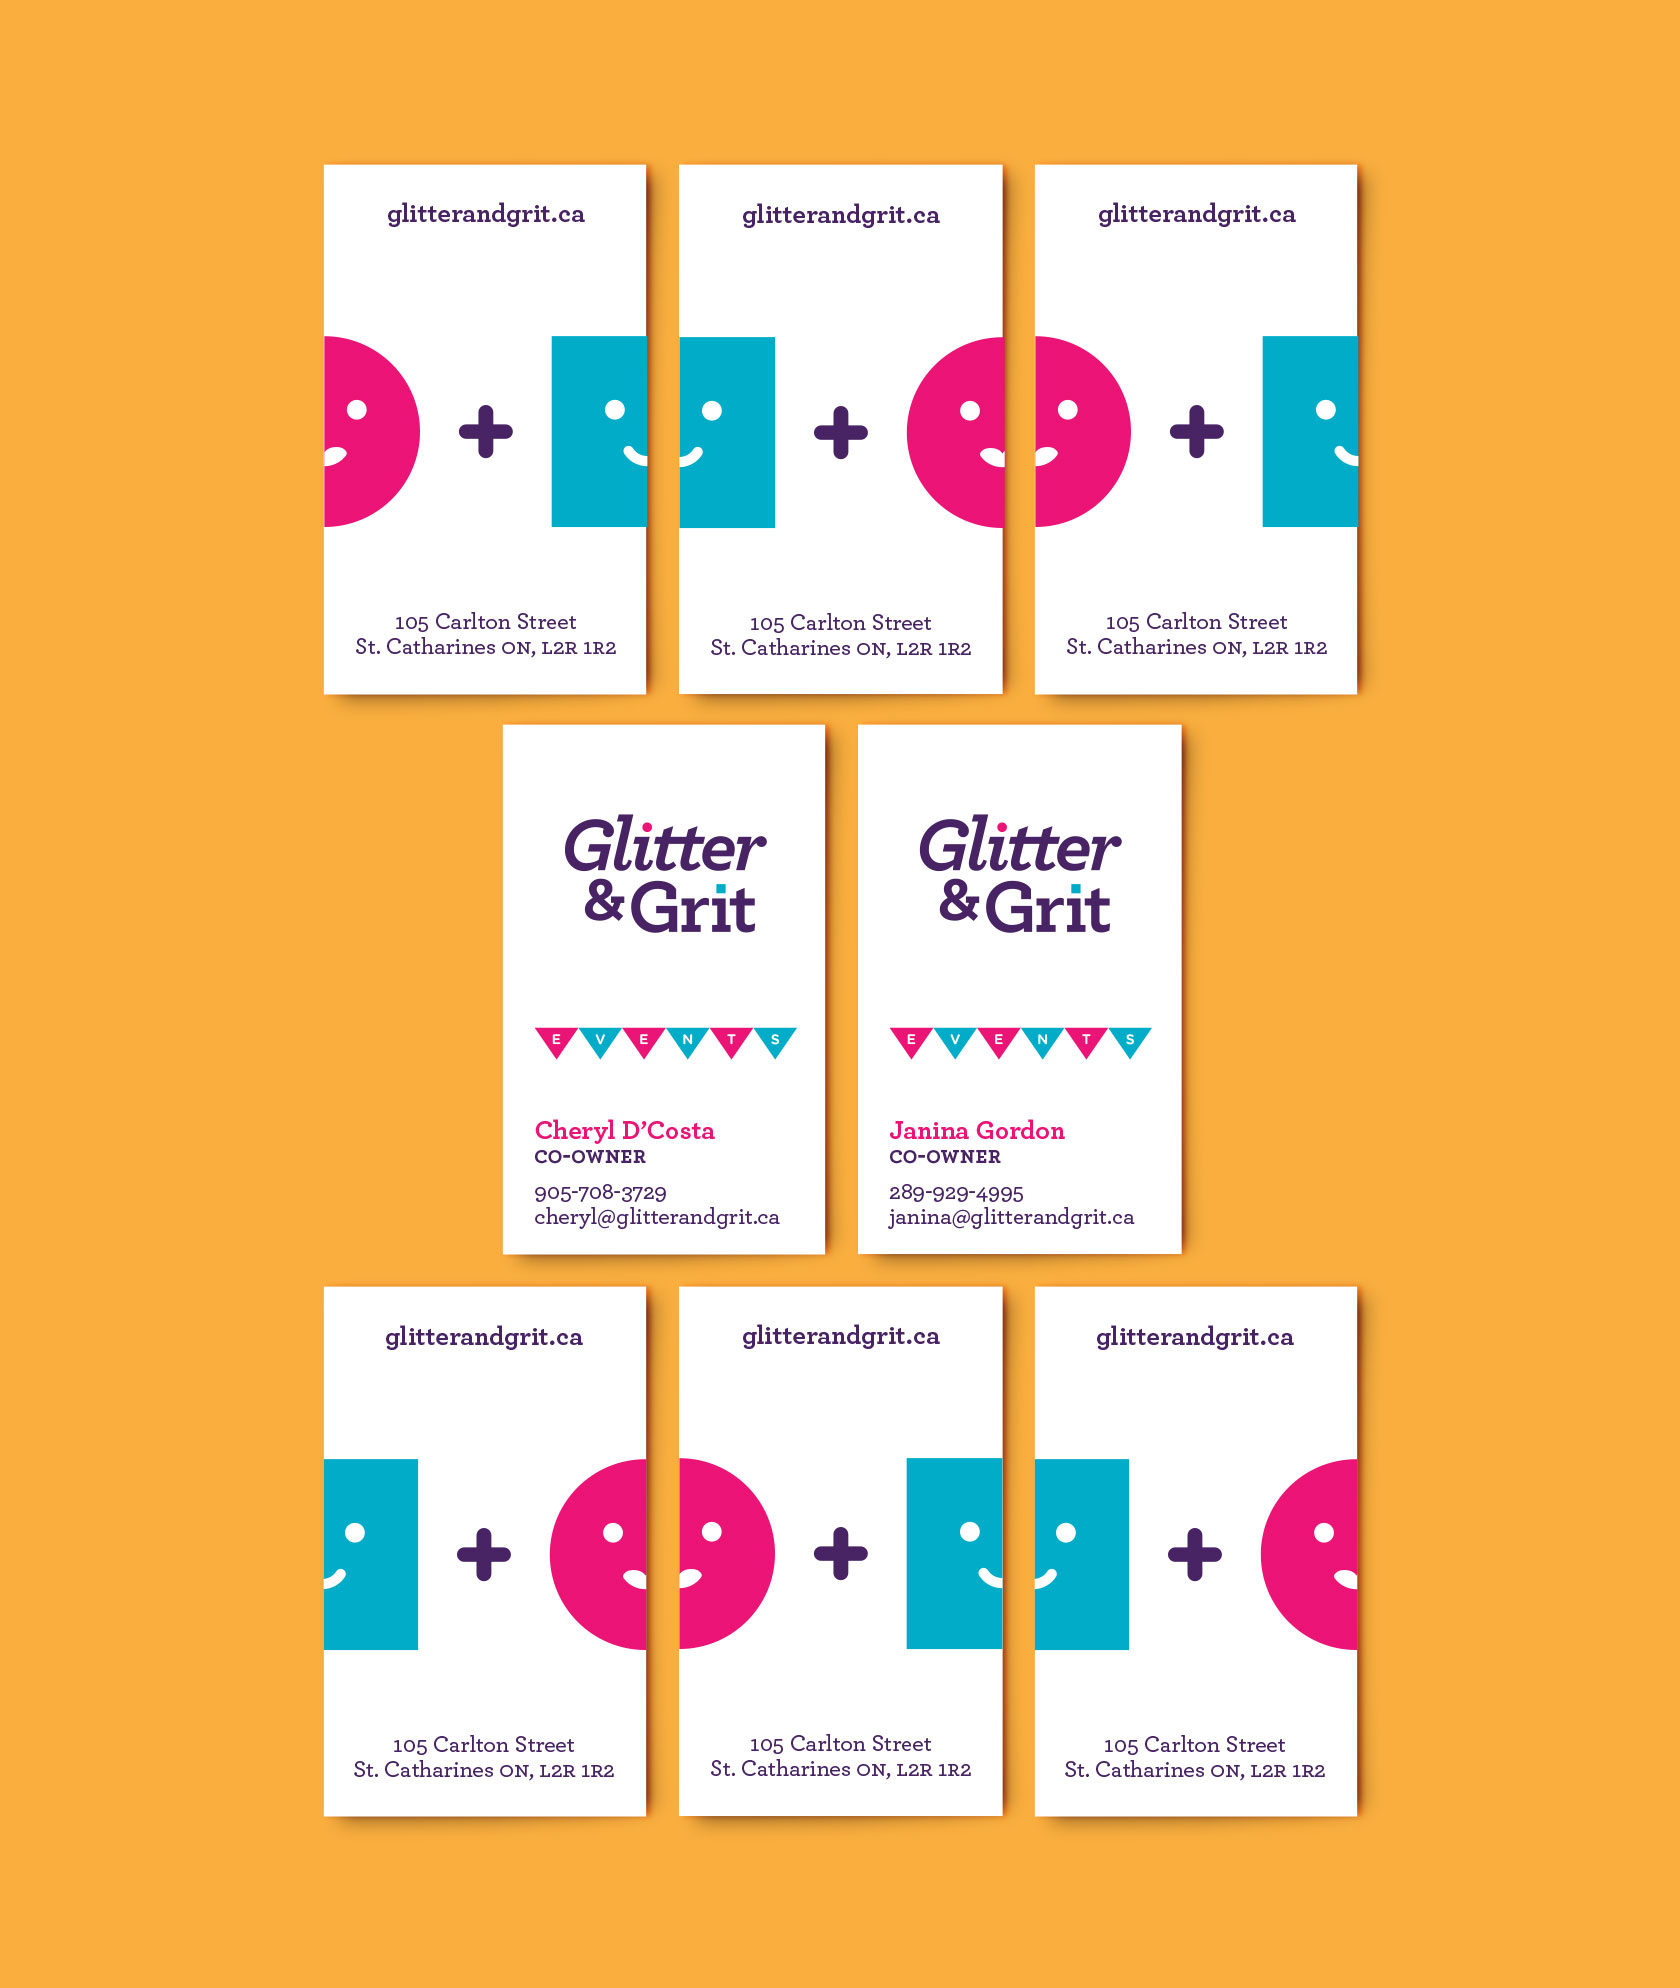 Glitter & Grit Business Card Designs by Furia